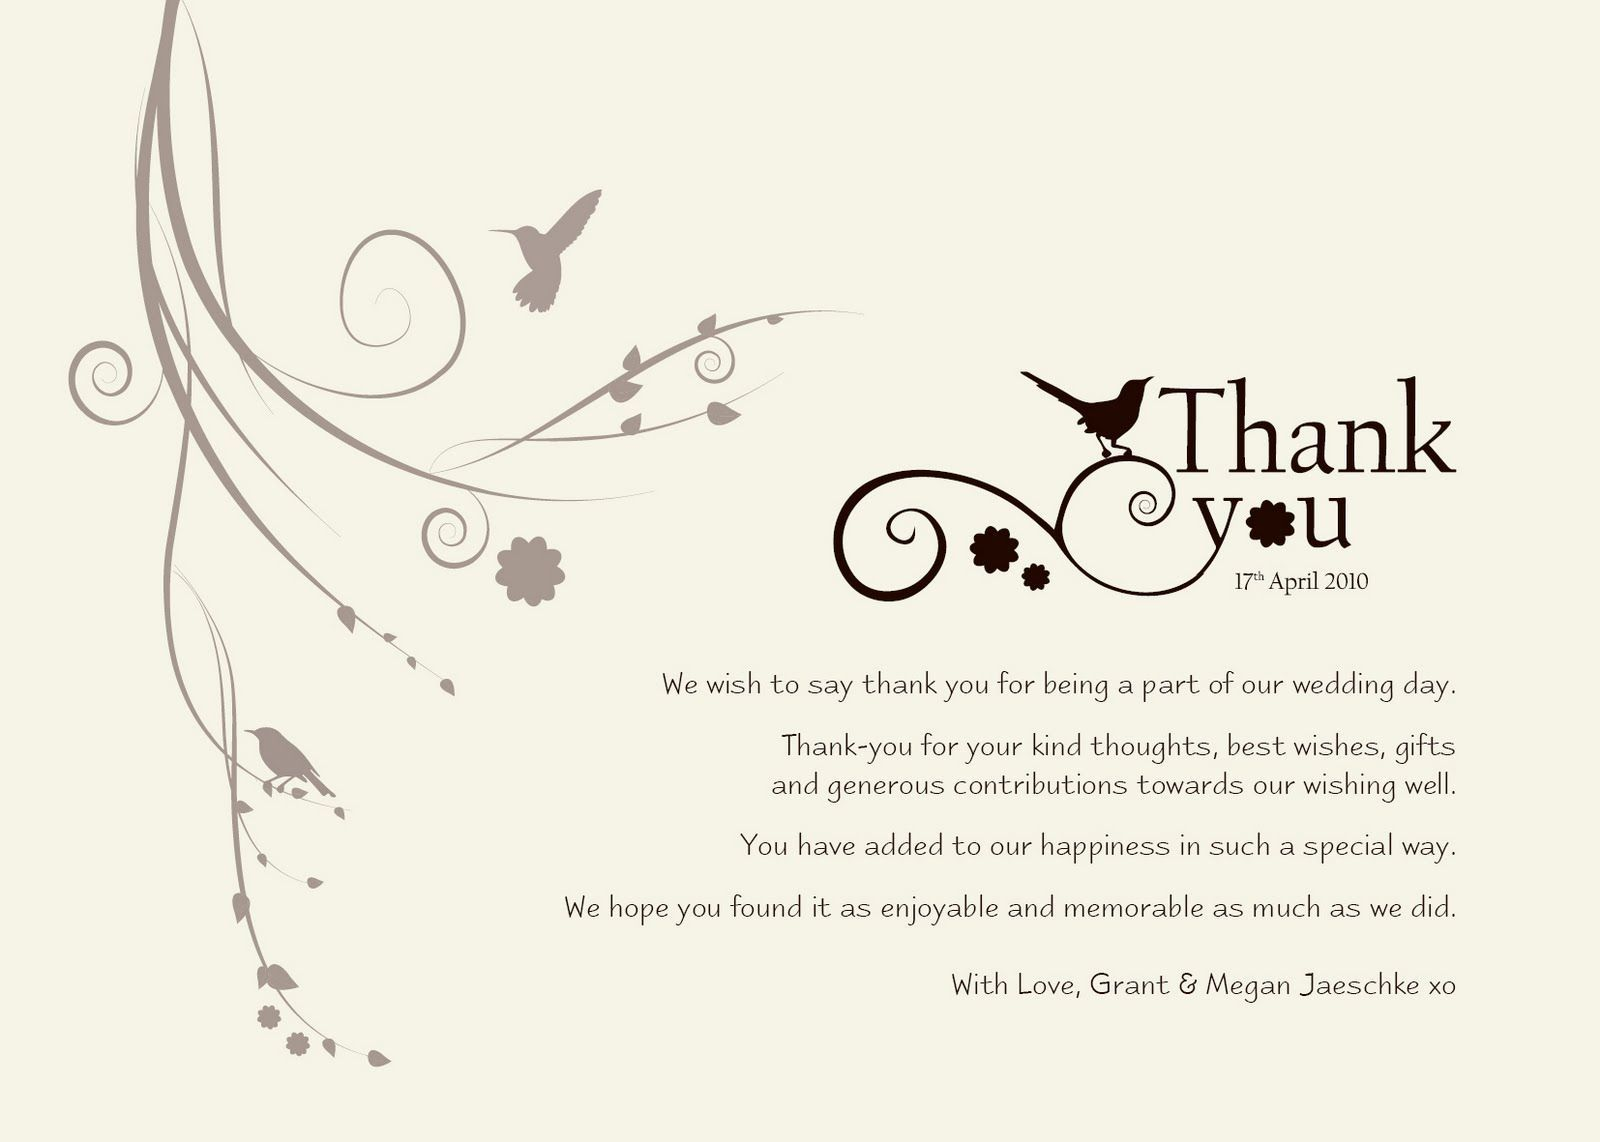 002 Marvelou Thank You Note Template Wedding High Def  Card Etsy WordingFull